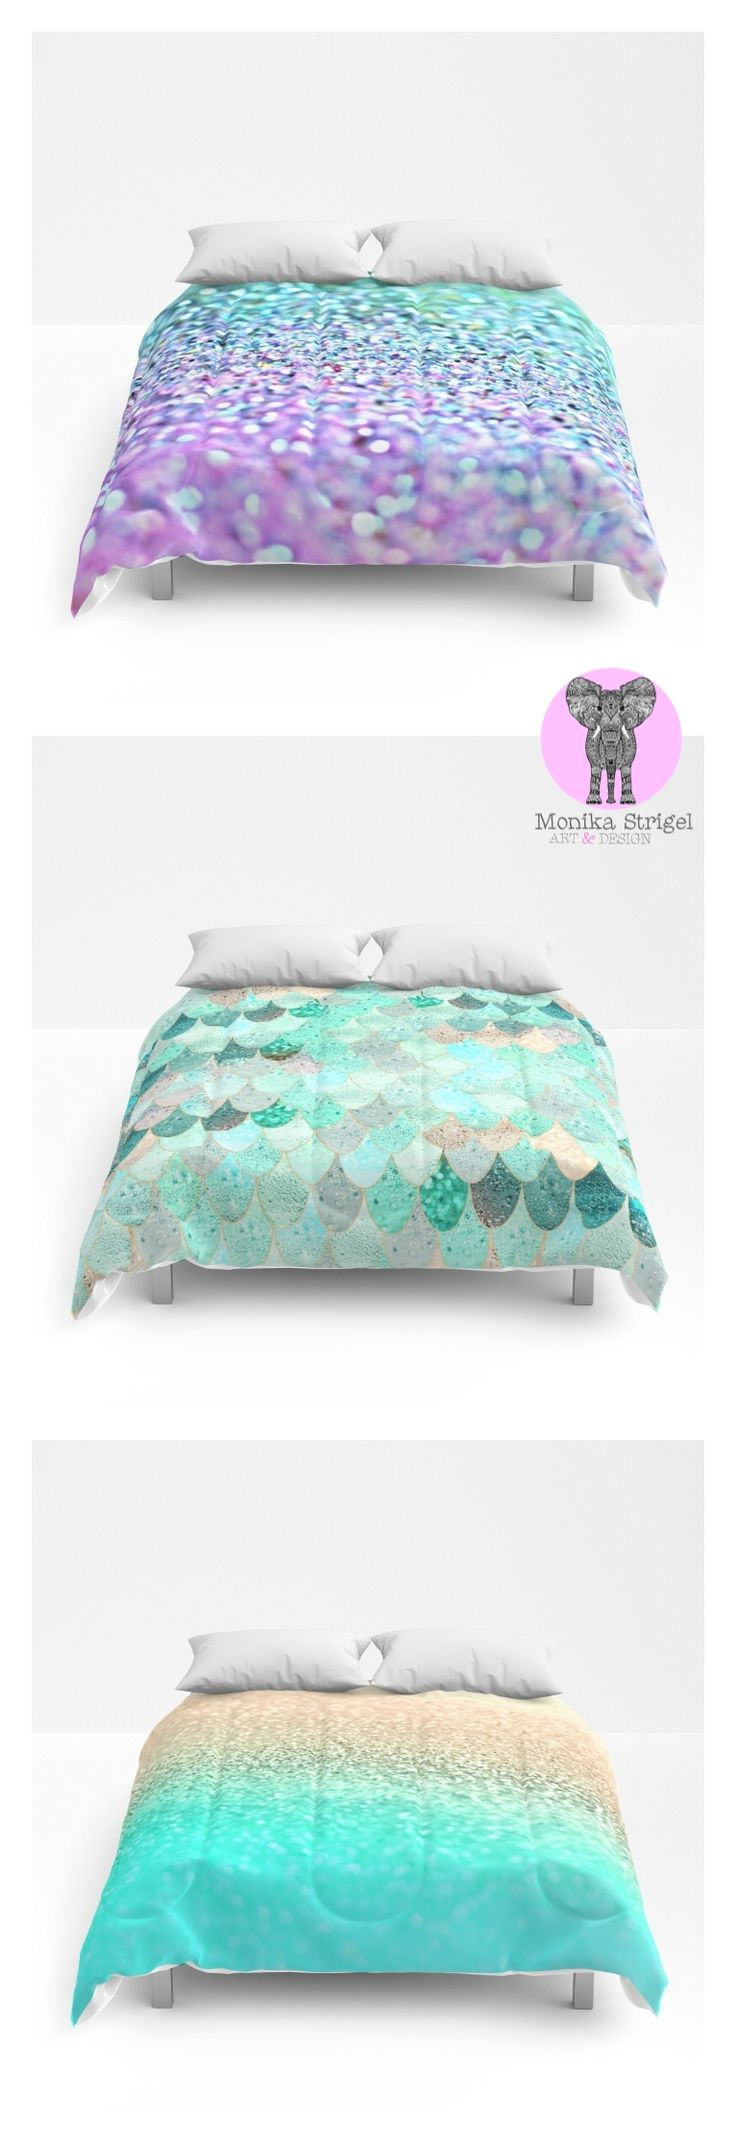 Which one?  Find the cutest comforters for teenage rooms and girl rooms on Society6 in my shop. All shades of mint, pink, purple and pastels. Starting from $89 for twin, queen and king size.  #comforter #duvet #bedding #teenbedding #mermaid #mermaidscales #gold #fading #ombre #girlroom #teenroom #teenbedding #girlbedding #cute #mint #pink #lavender #purple #gold #glitter #sparkly #sparkle #monikastrigel #society6